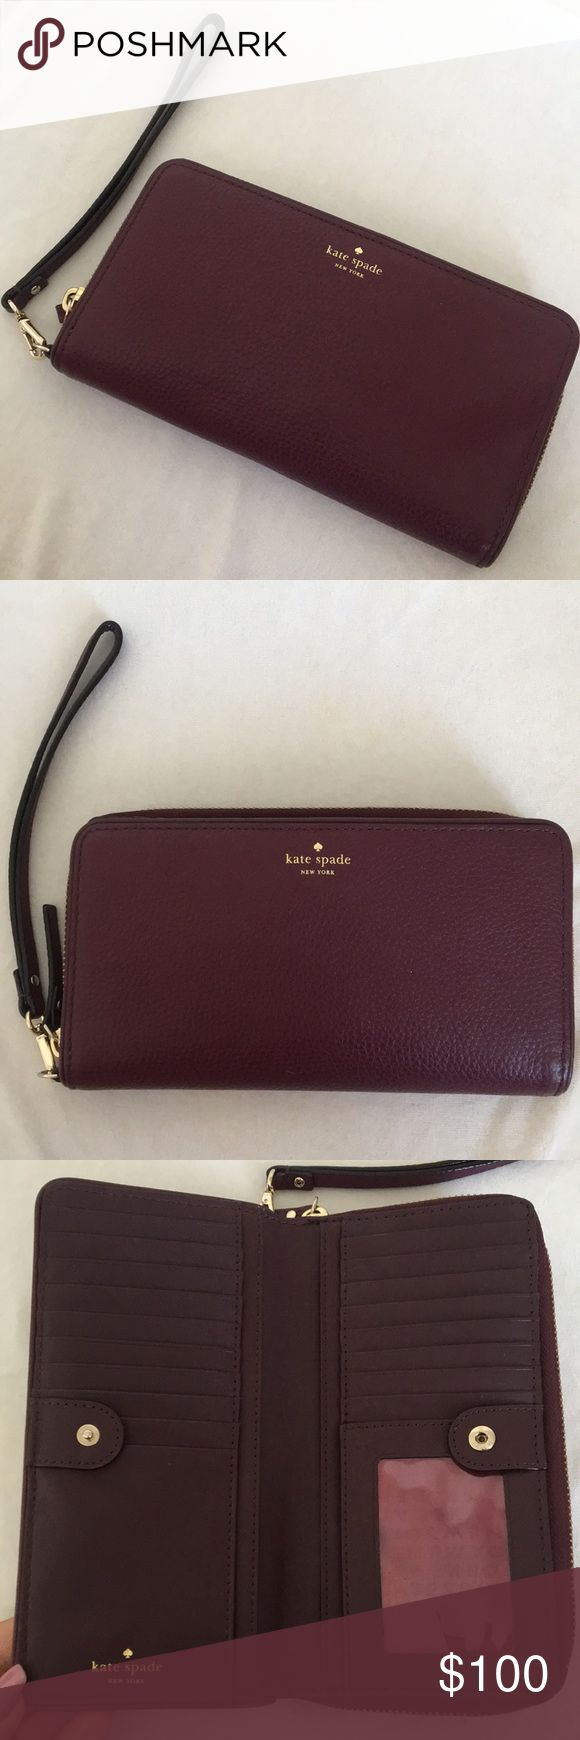 Like new Kate spade wallet ❤️ Beautiful and 100% authentic wallet. Was used for less then a week I love it so much but I have way to many wallets/purses. This wallet has so much space! Any questions just ask :) NO OFFERS IN COMMENT SECTION. REASONABLE offers always welcome ❤️❤️ kate spade Bags Wallets